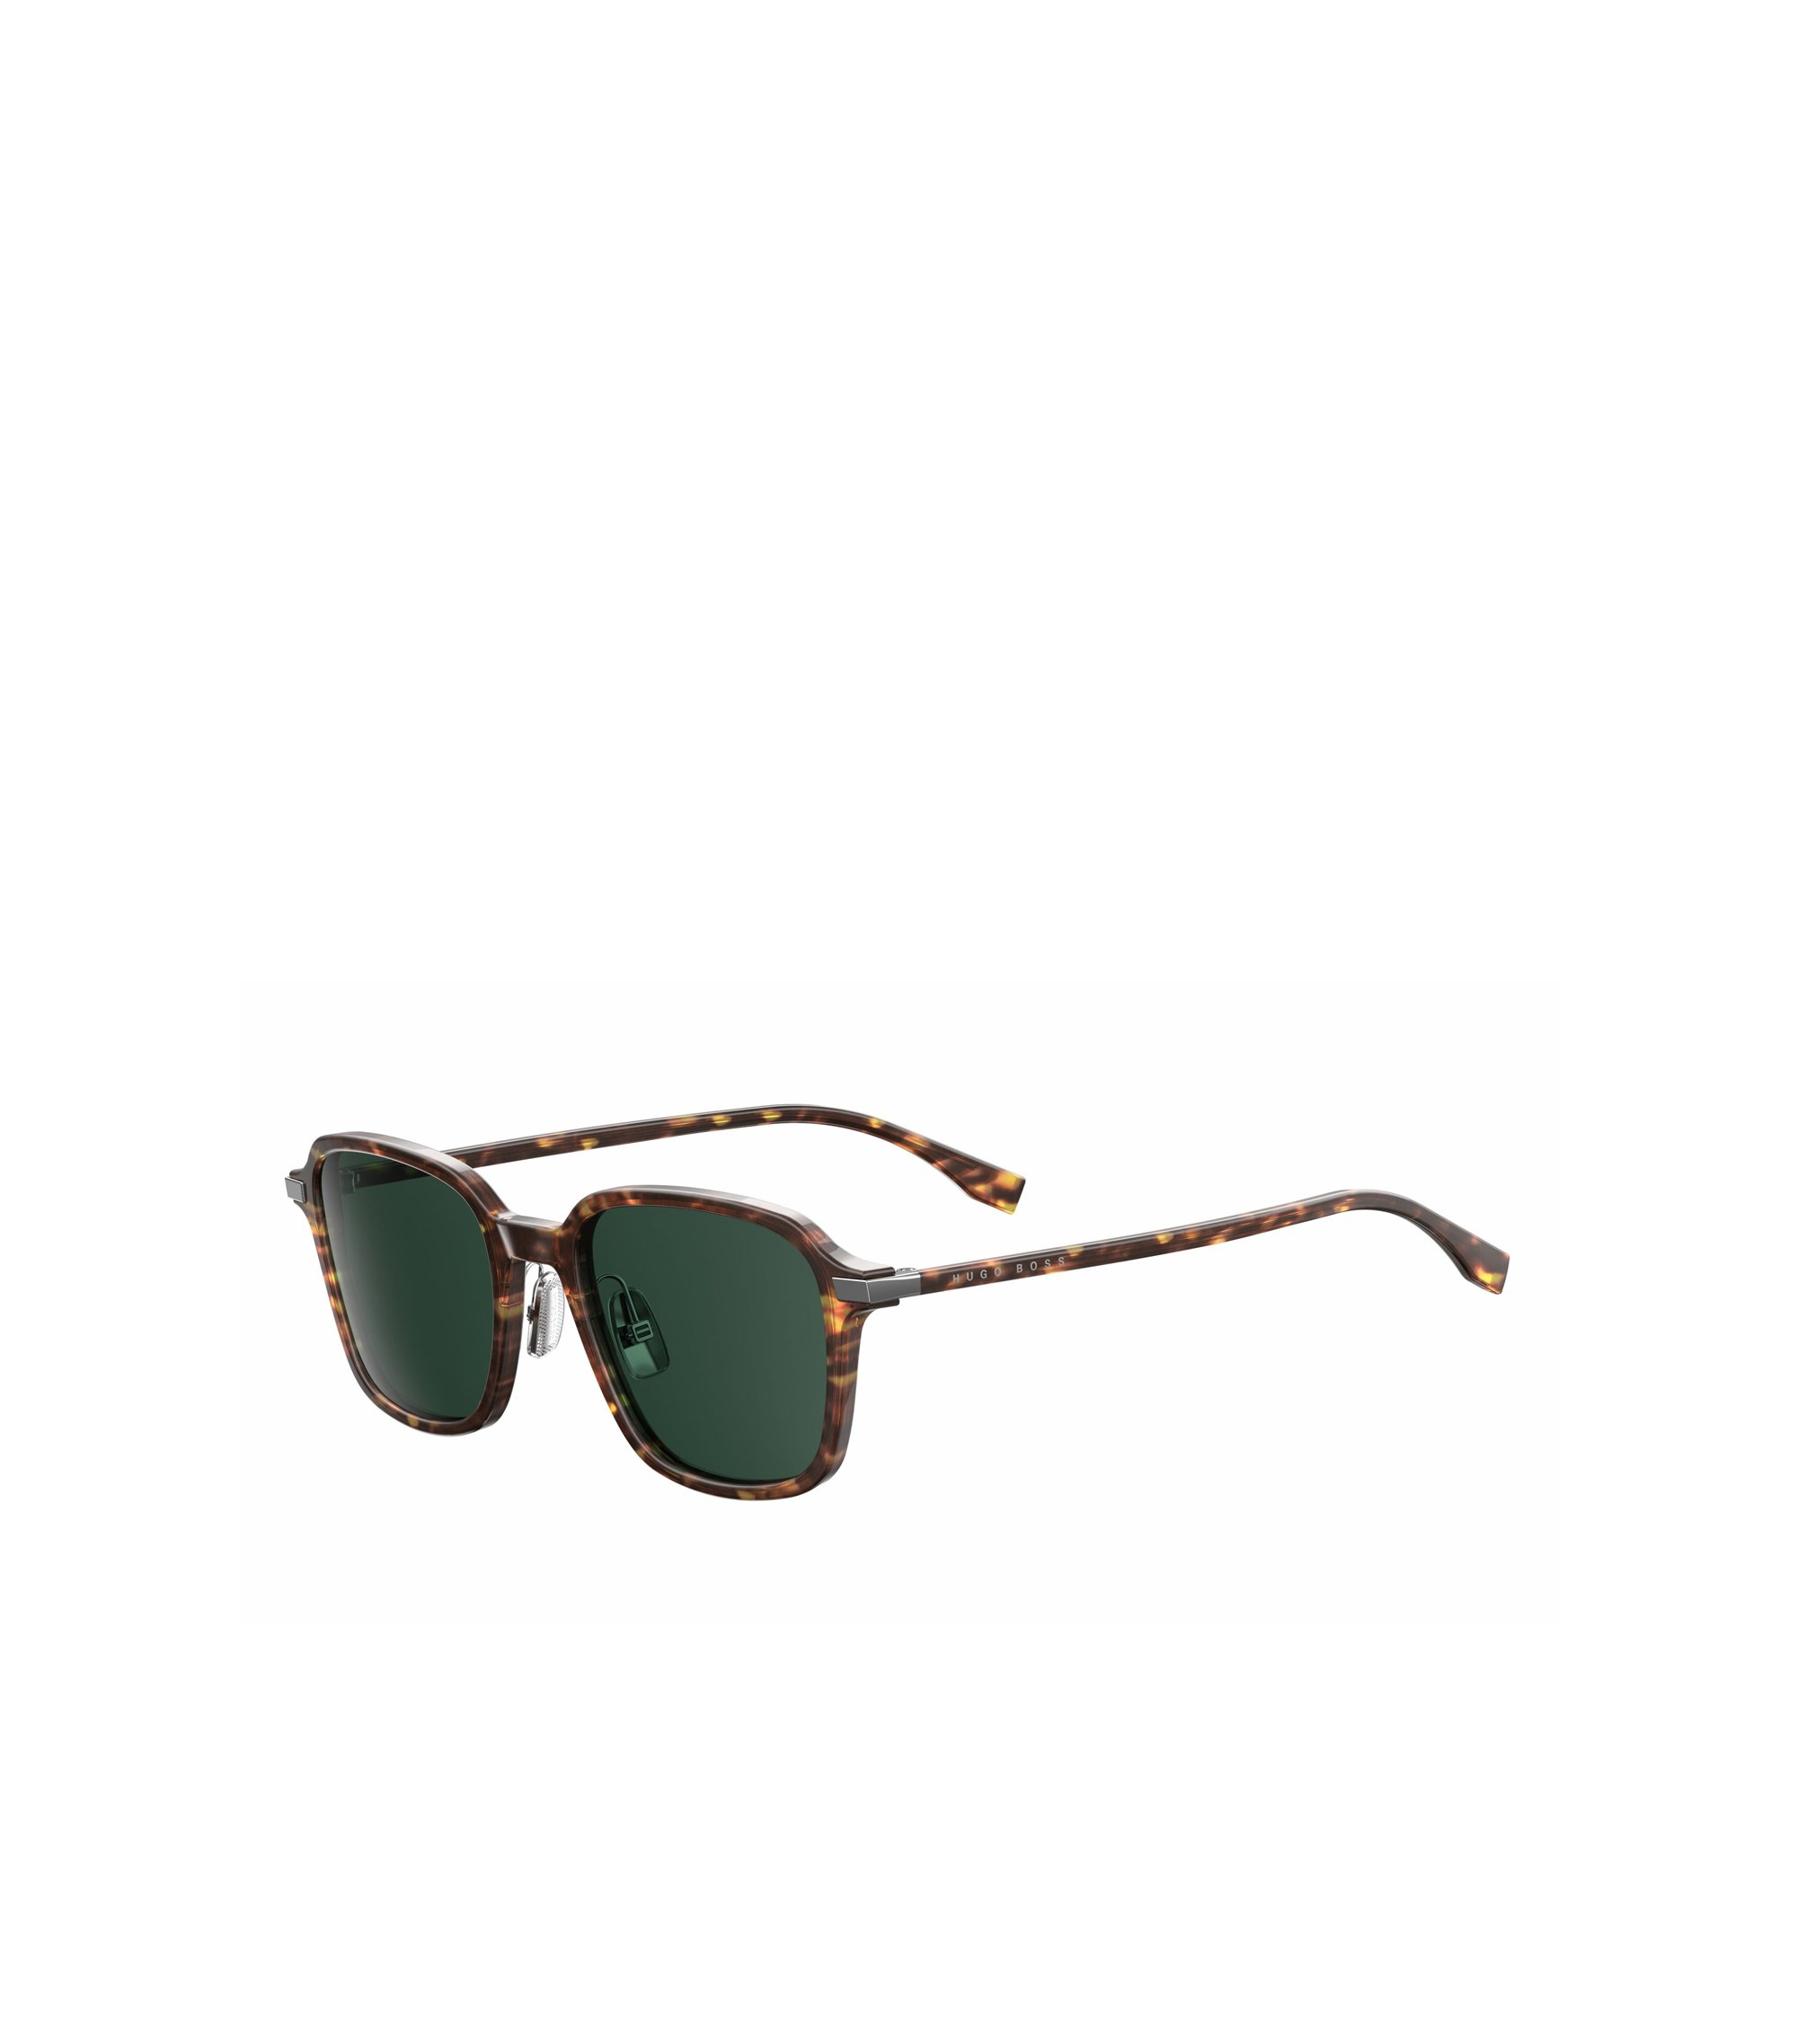 Green Lens Havana Square Sunglasses | BOSS 0909S, Assorted-Pre-Pack